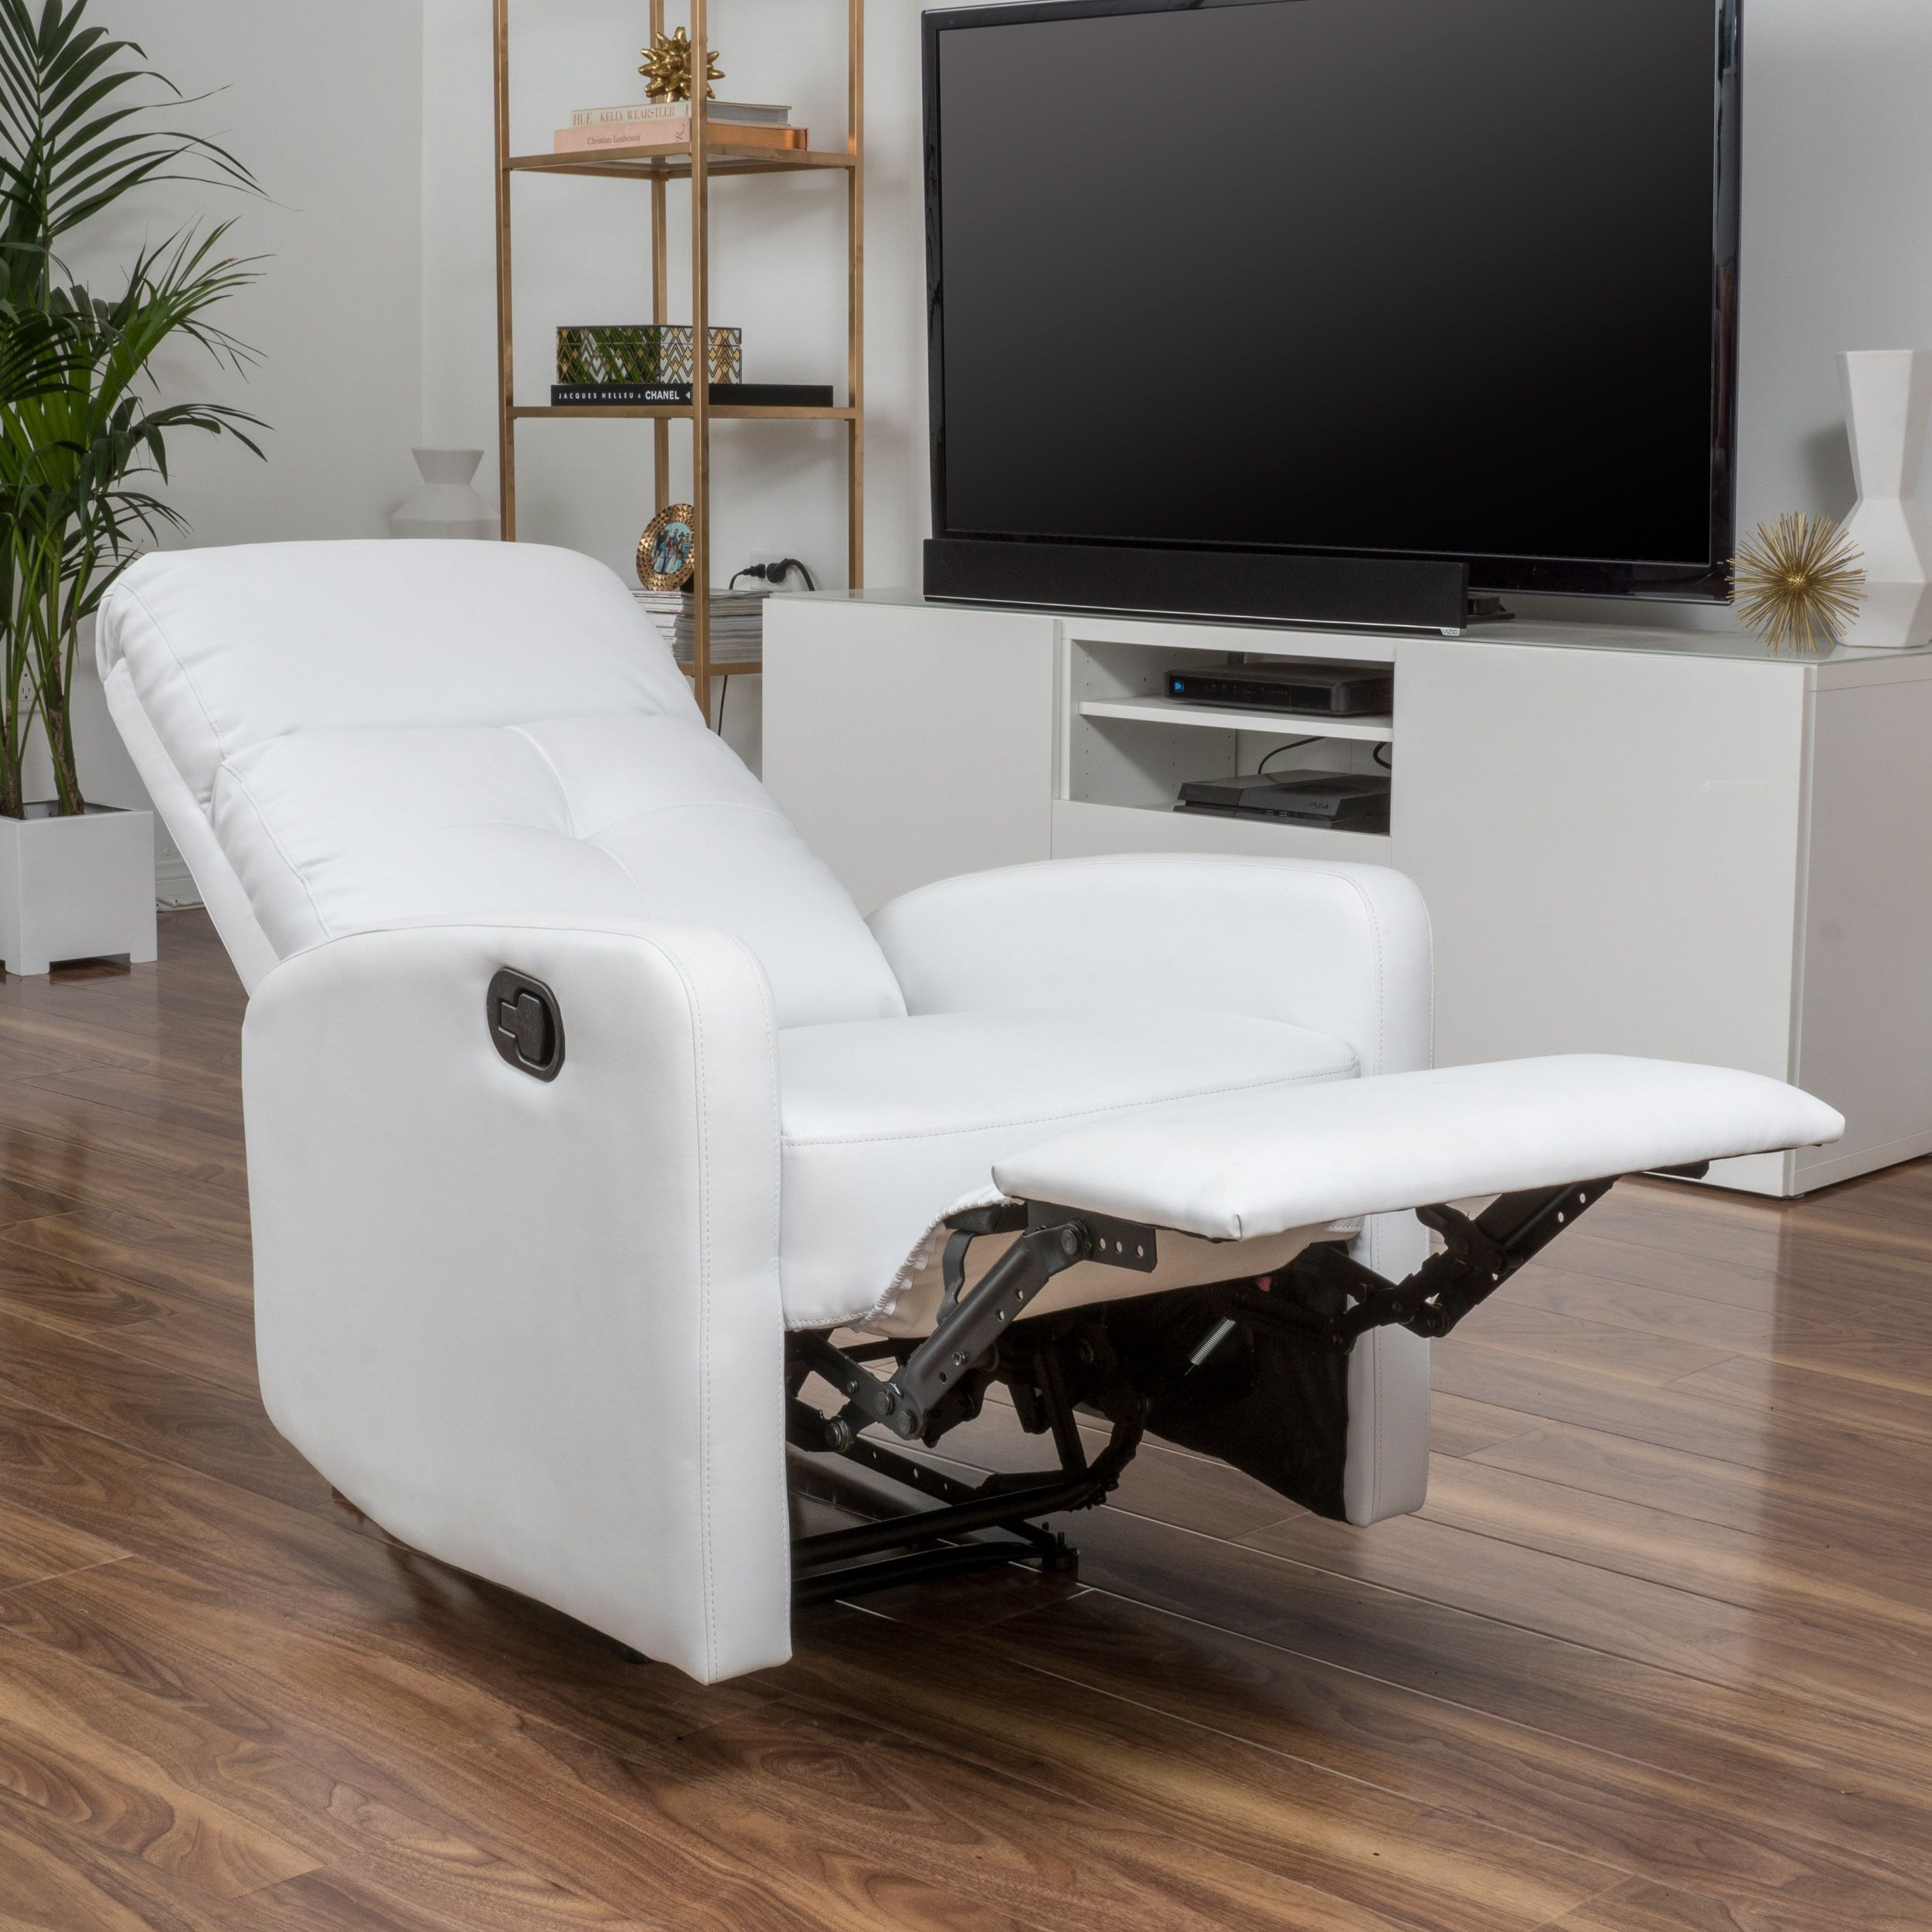 Upholstered In Beautiful Pu Leather This Recliner Enjoys A Clic Look While Still Keeping Its Clean Lines And Simple Feel